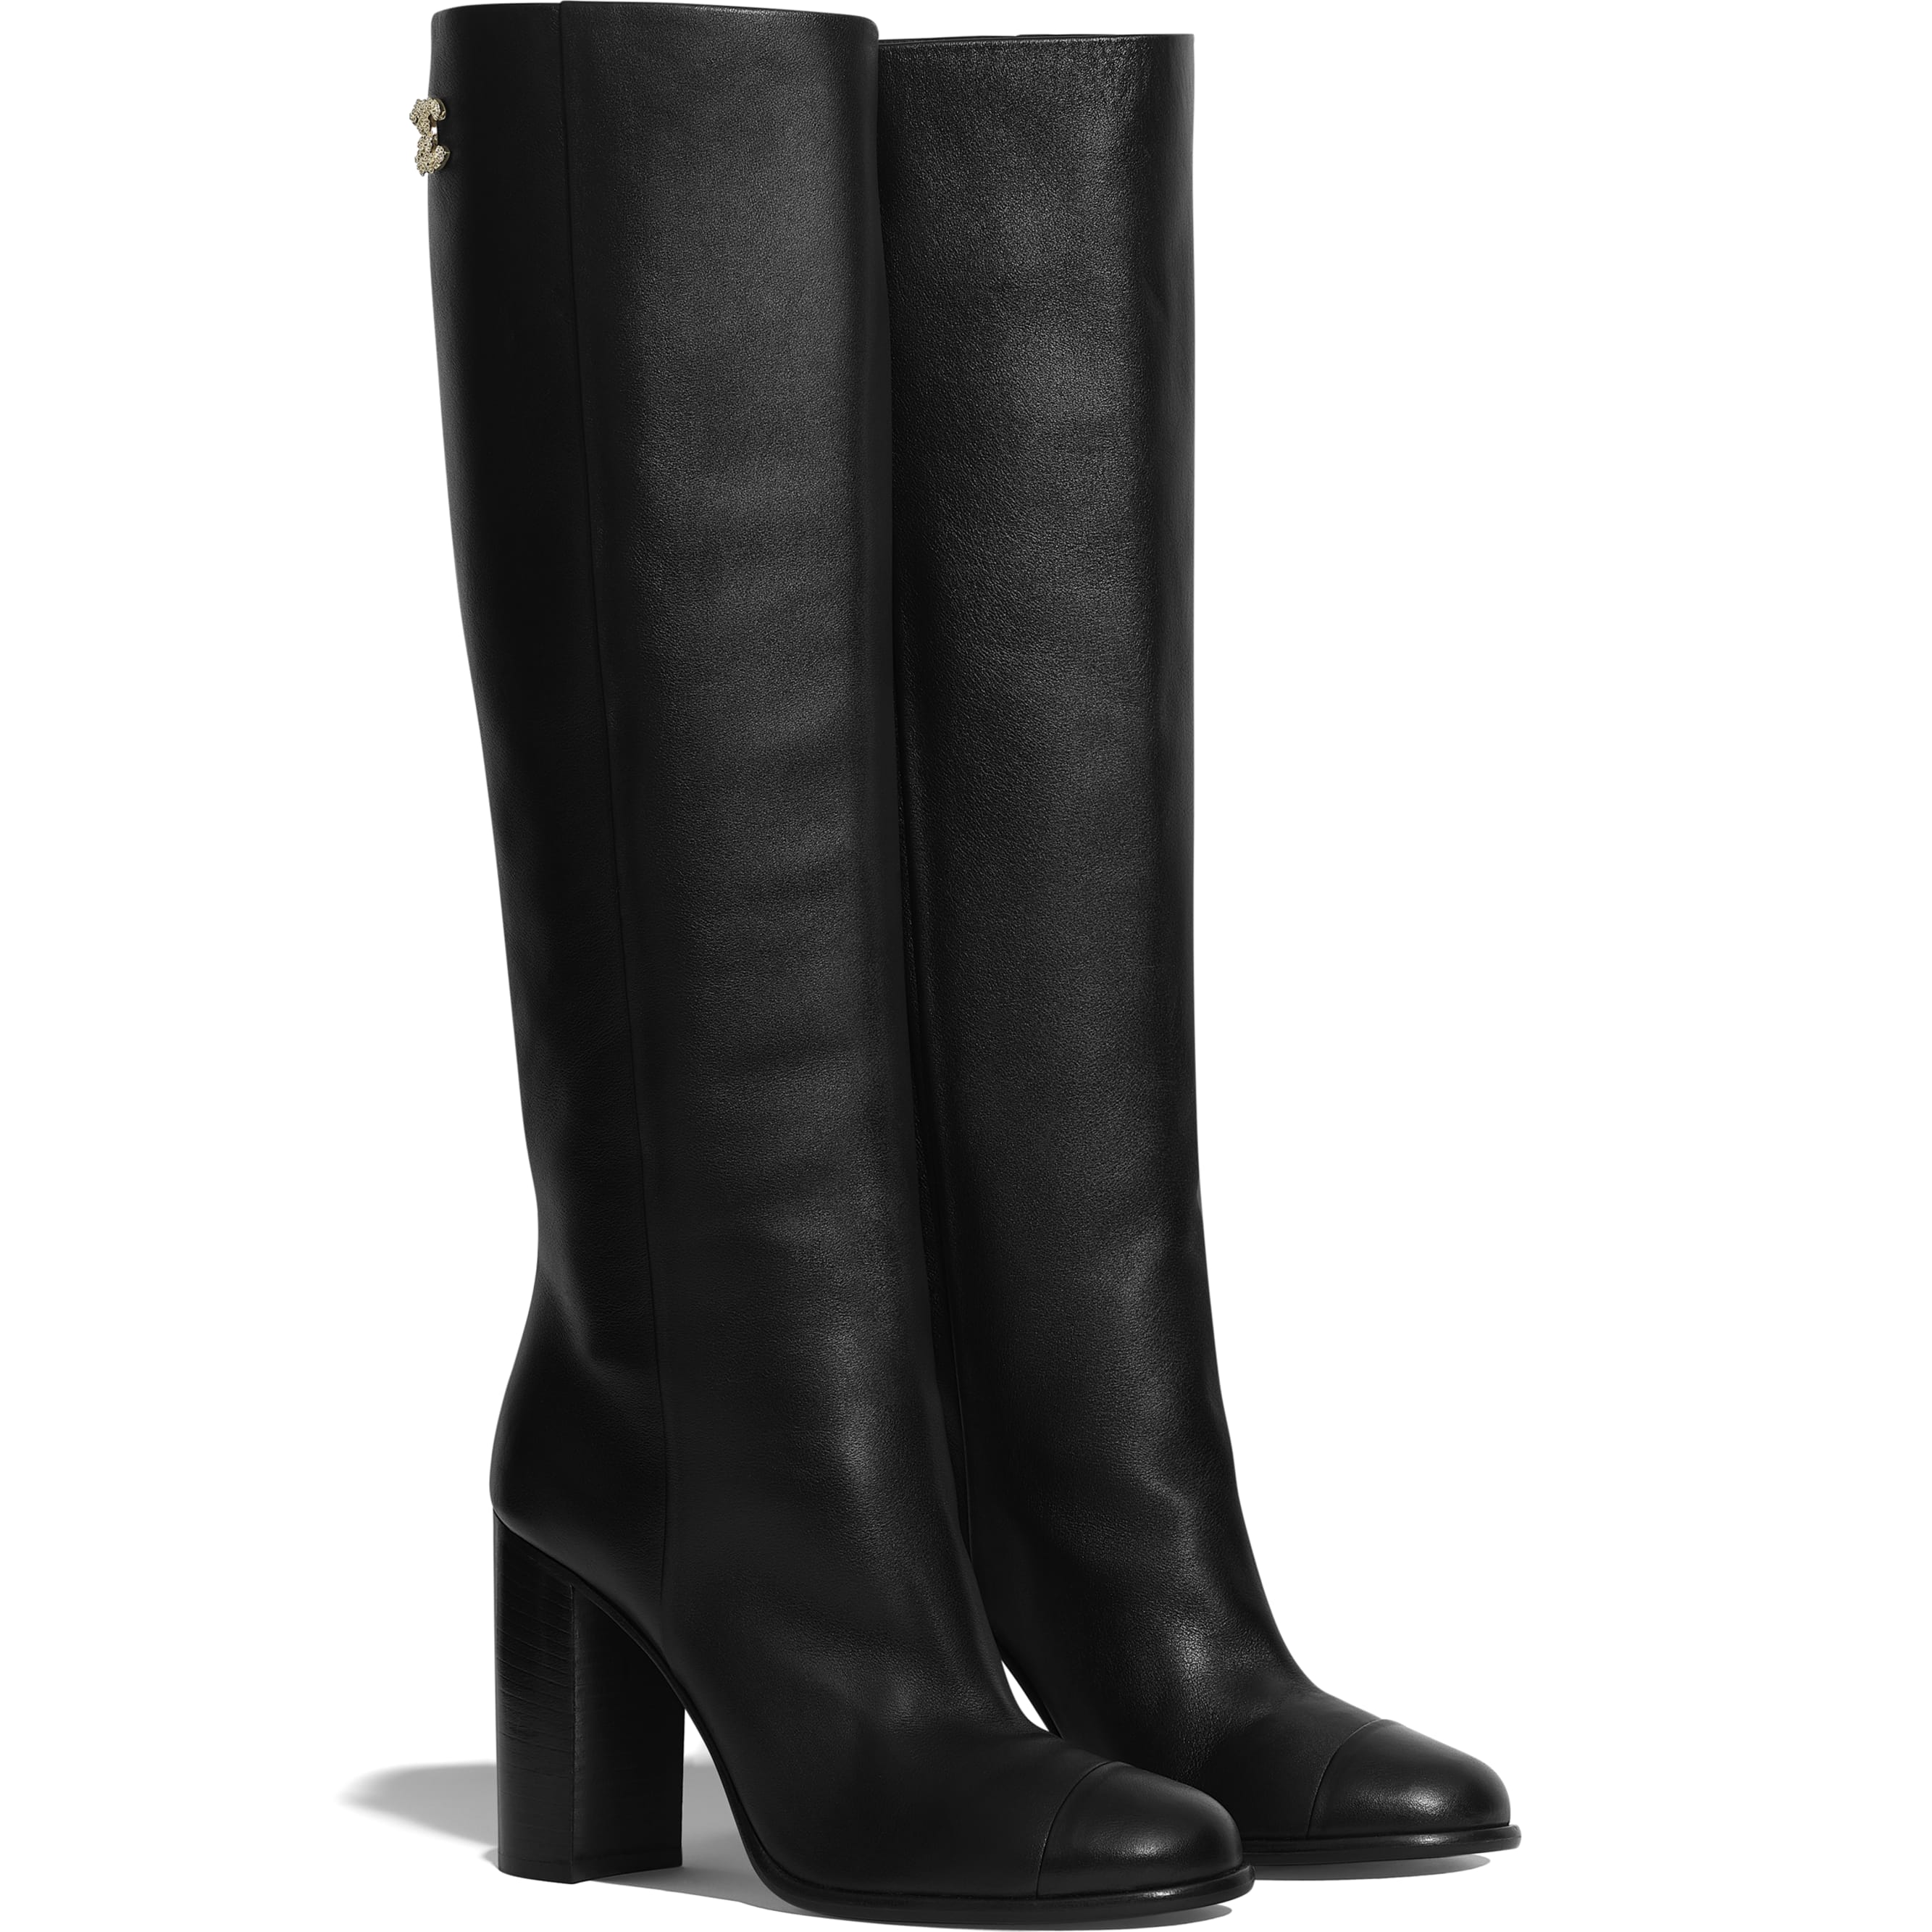 High Boots - Black - Calfskin - CHANEL - Alternative view - see standard sized version